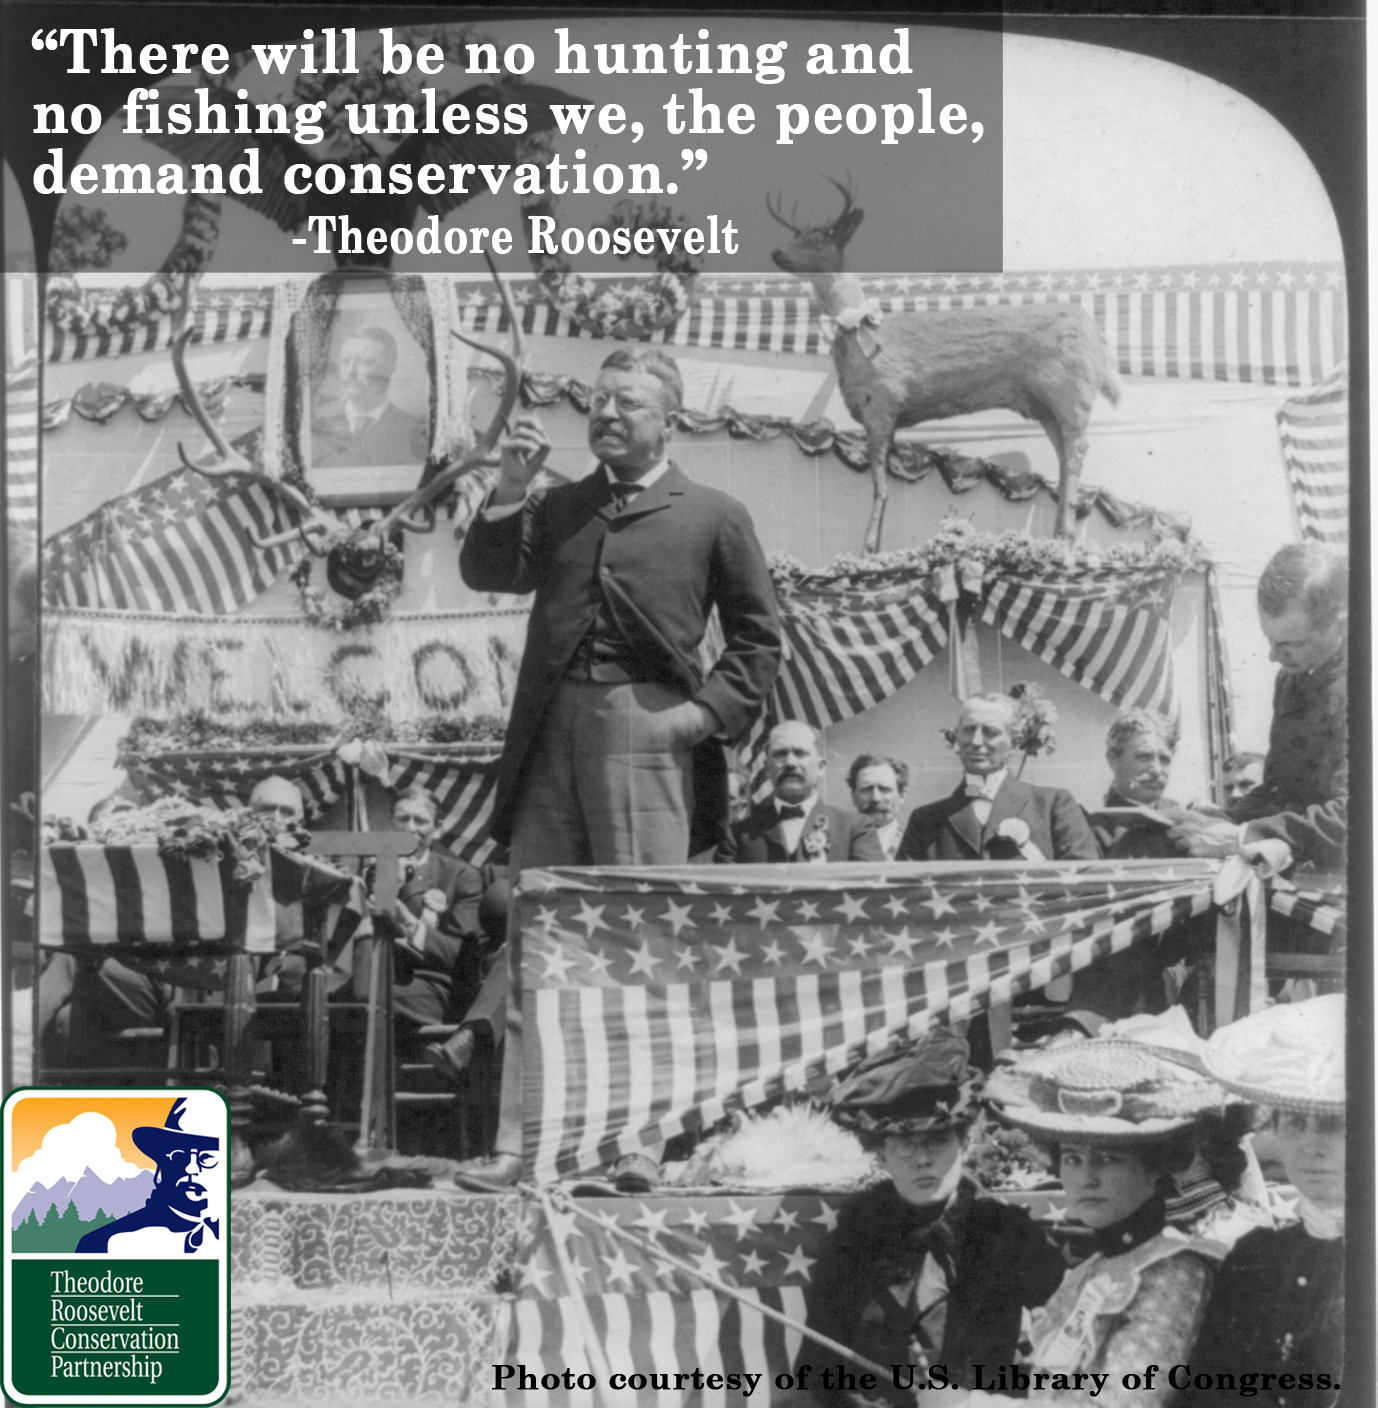 the role of theodore roosevelt in helping toconserveour environment Theodore roosevelt this paper will outline president theodore roosevelt's role in  helping toconserveour environment during his administration ( our natural.